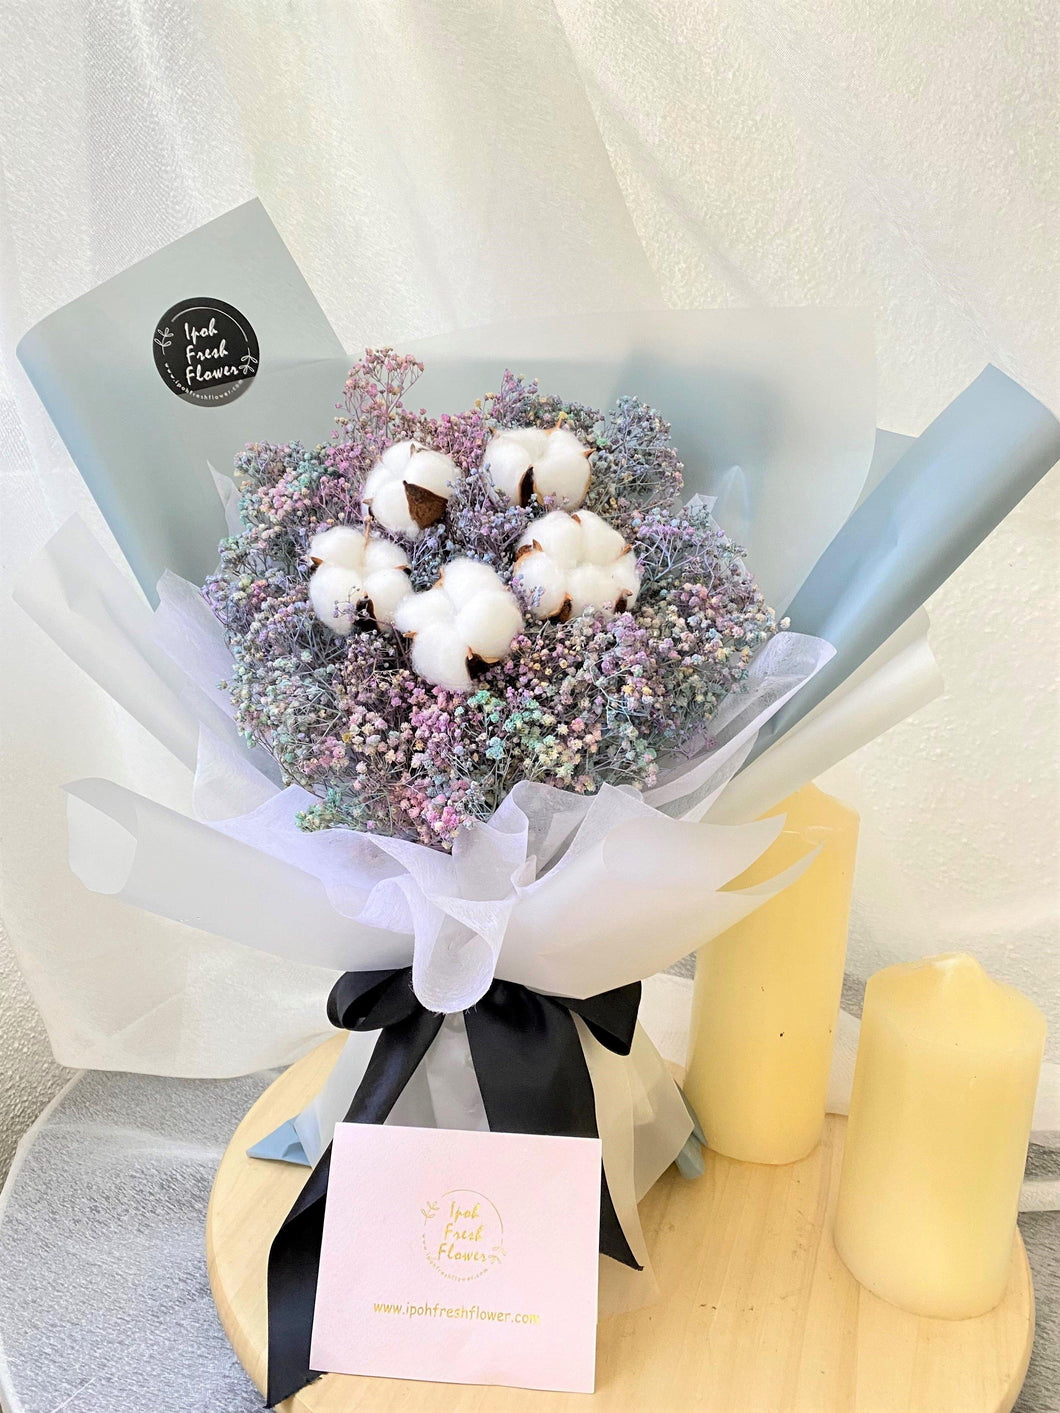 Cotton Flower Bouquet| Ipoh Free Delivery| Ipohfreshflower.com